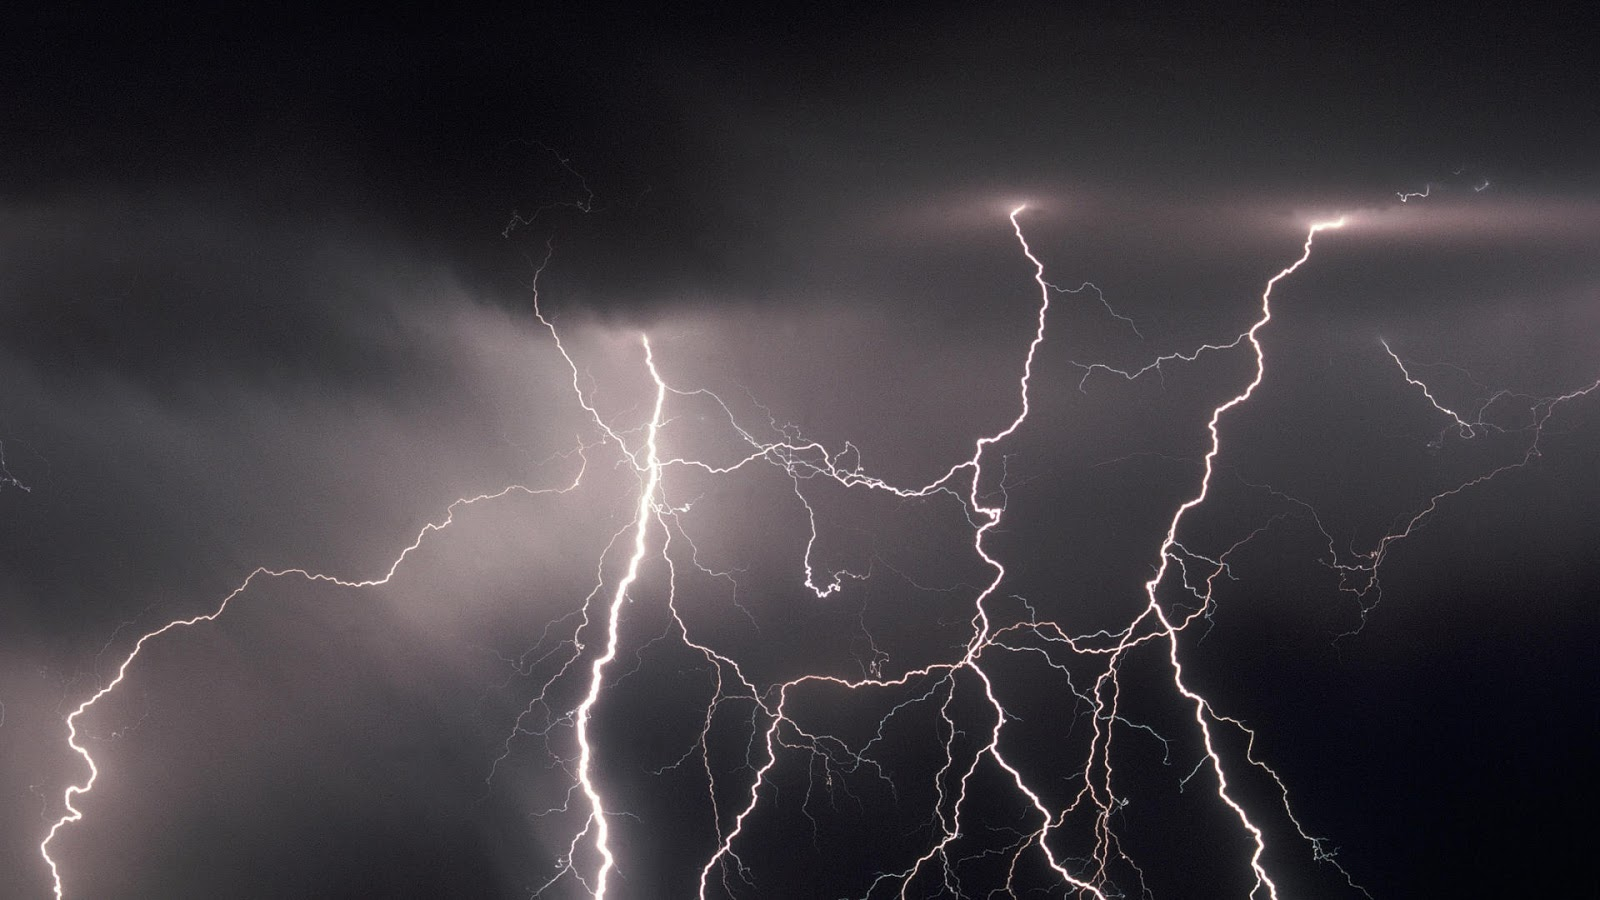 sky lightning wallpapers hd   Wallpaper 1600x900